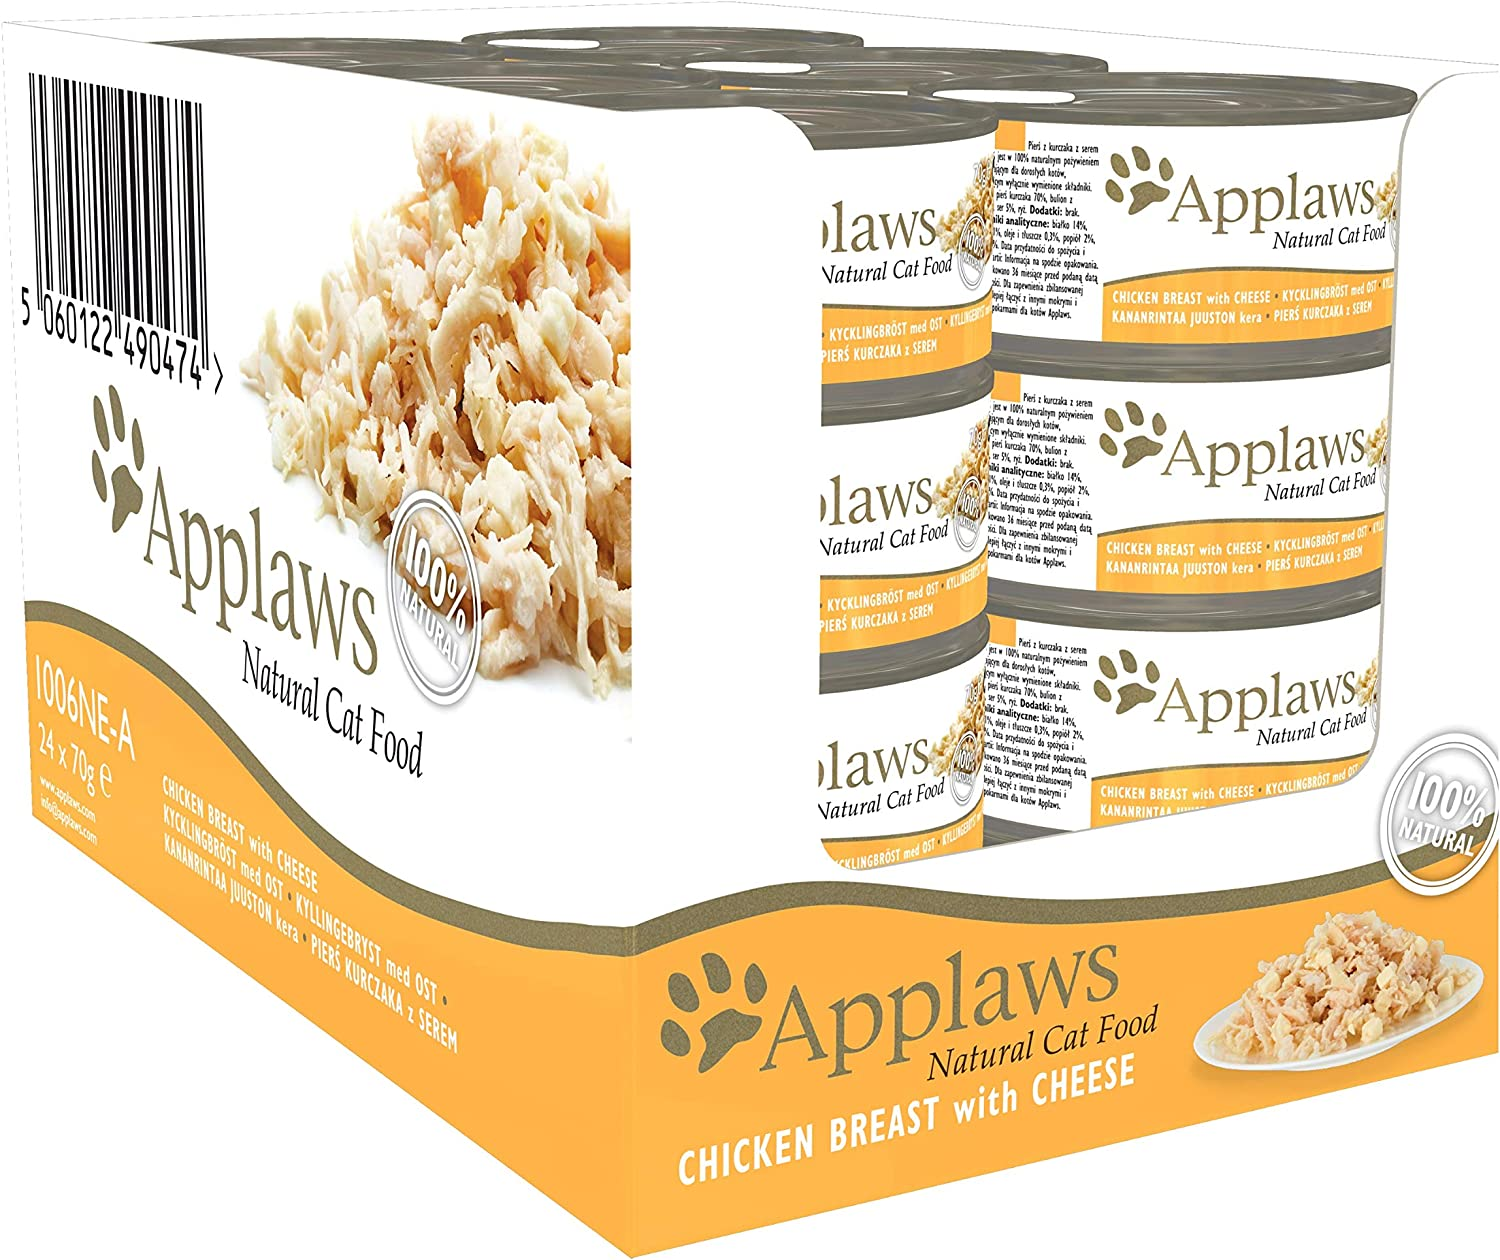 Applaws 100% Natural Wet Cat Food, Chicken with Cheese in Broth, 70 g Tin Cans (Pack of 24)